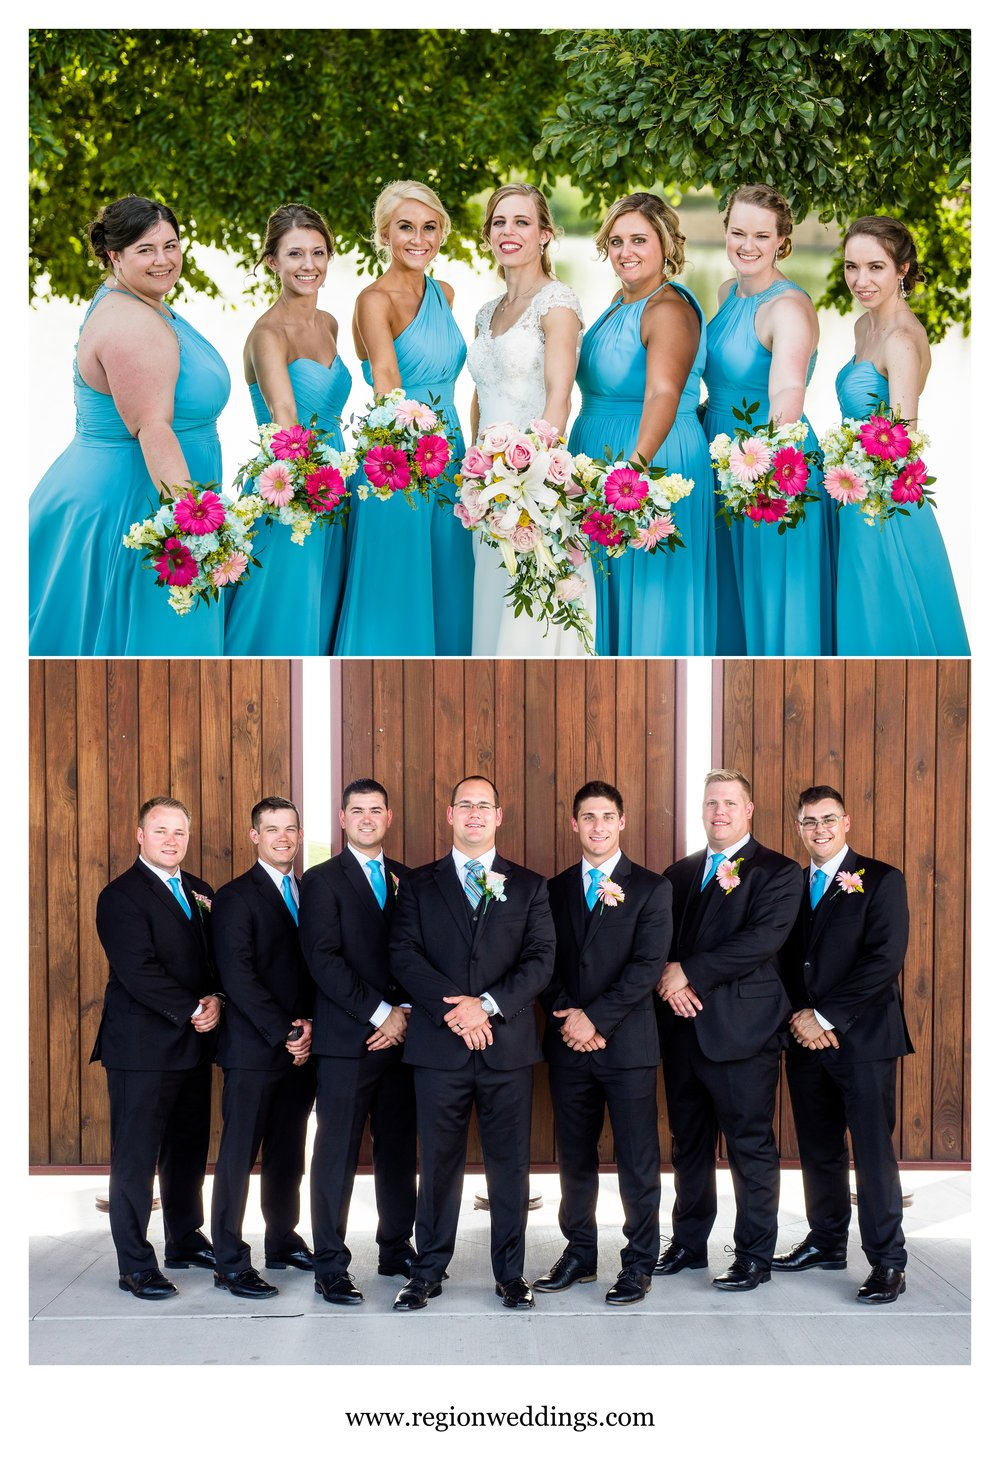 Bridesmaids and groomsmen photos at Centennial Park in Dyer, Indiana.